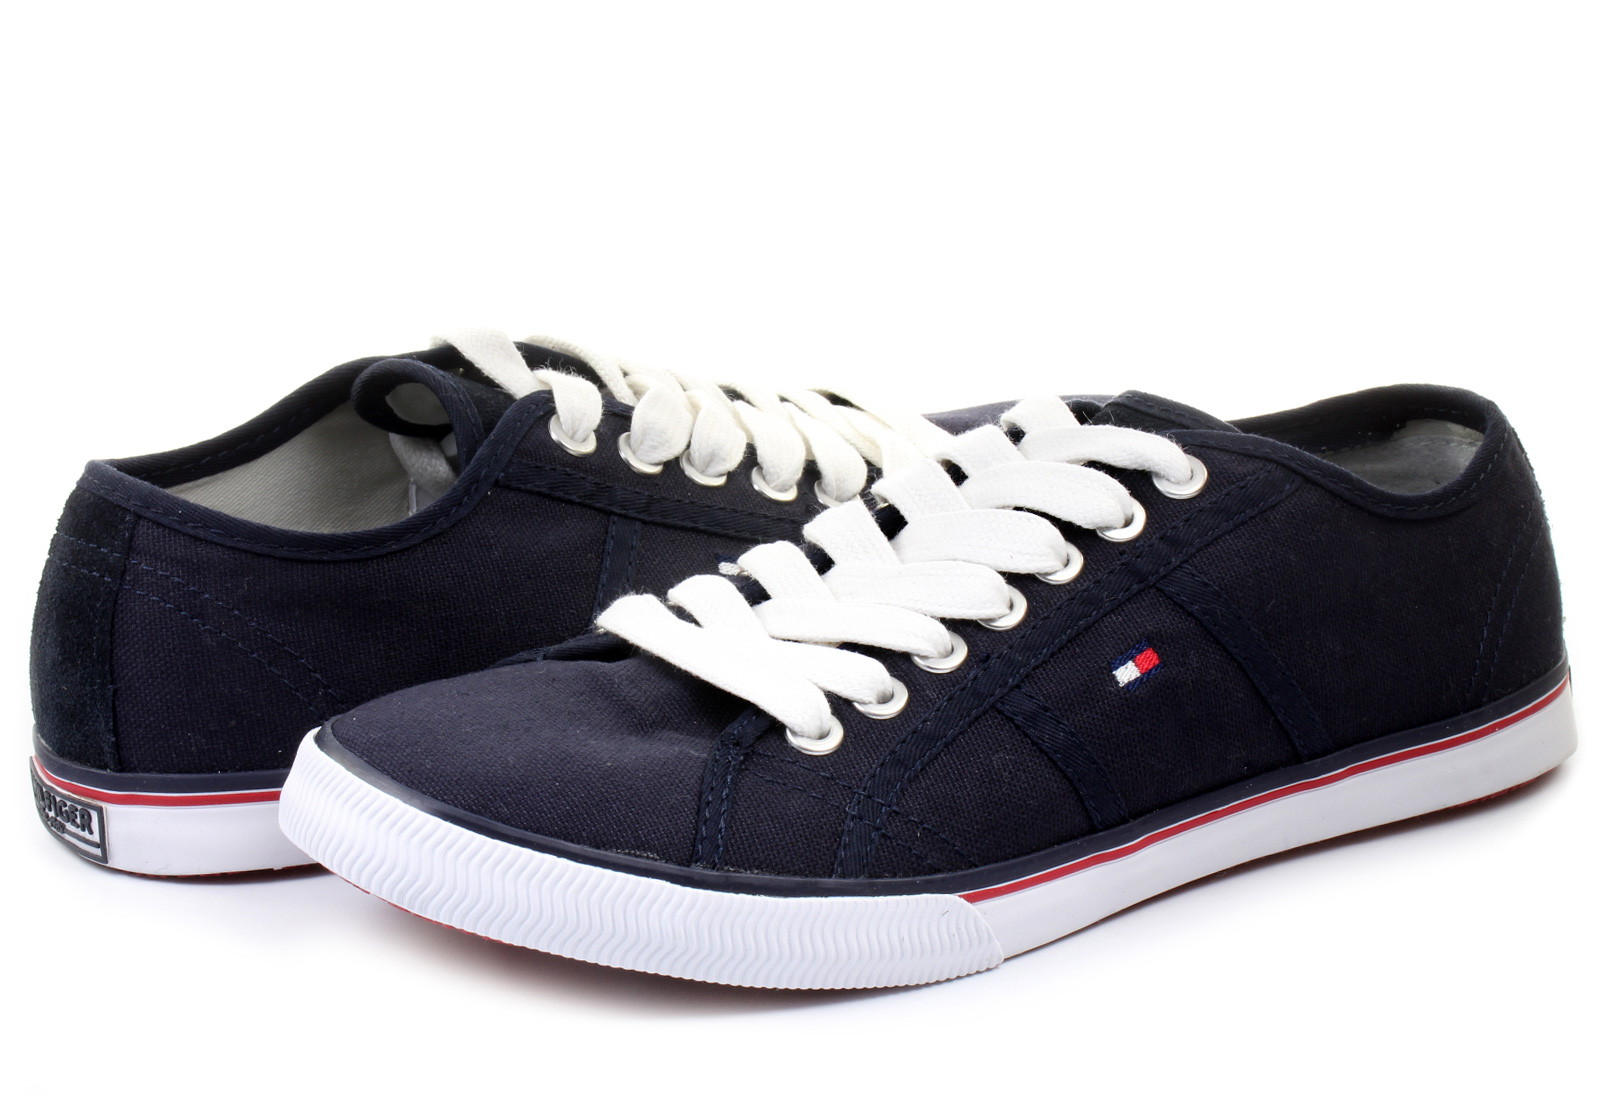 tommy hilfiger sneakers vantage 2a 14s 6983 403 online shop for sneakers shoes and boots. Black Bedroom Furniture Sets. Home Design Ideas